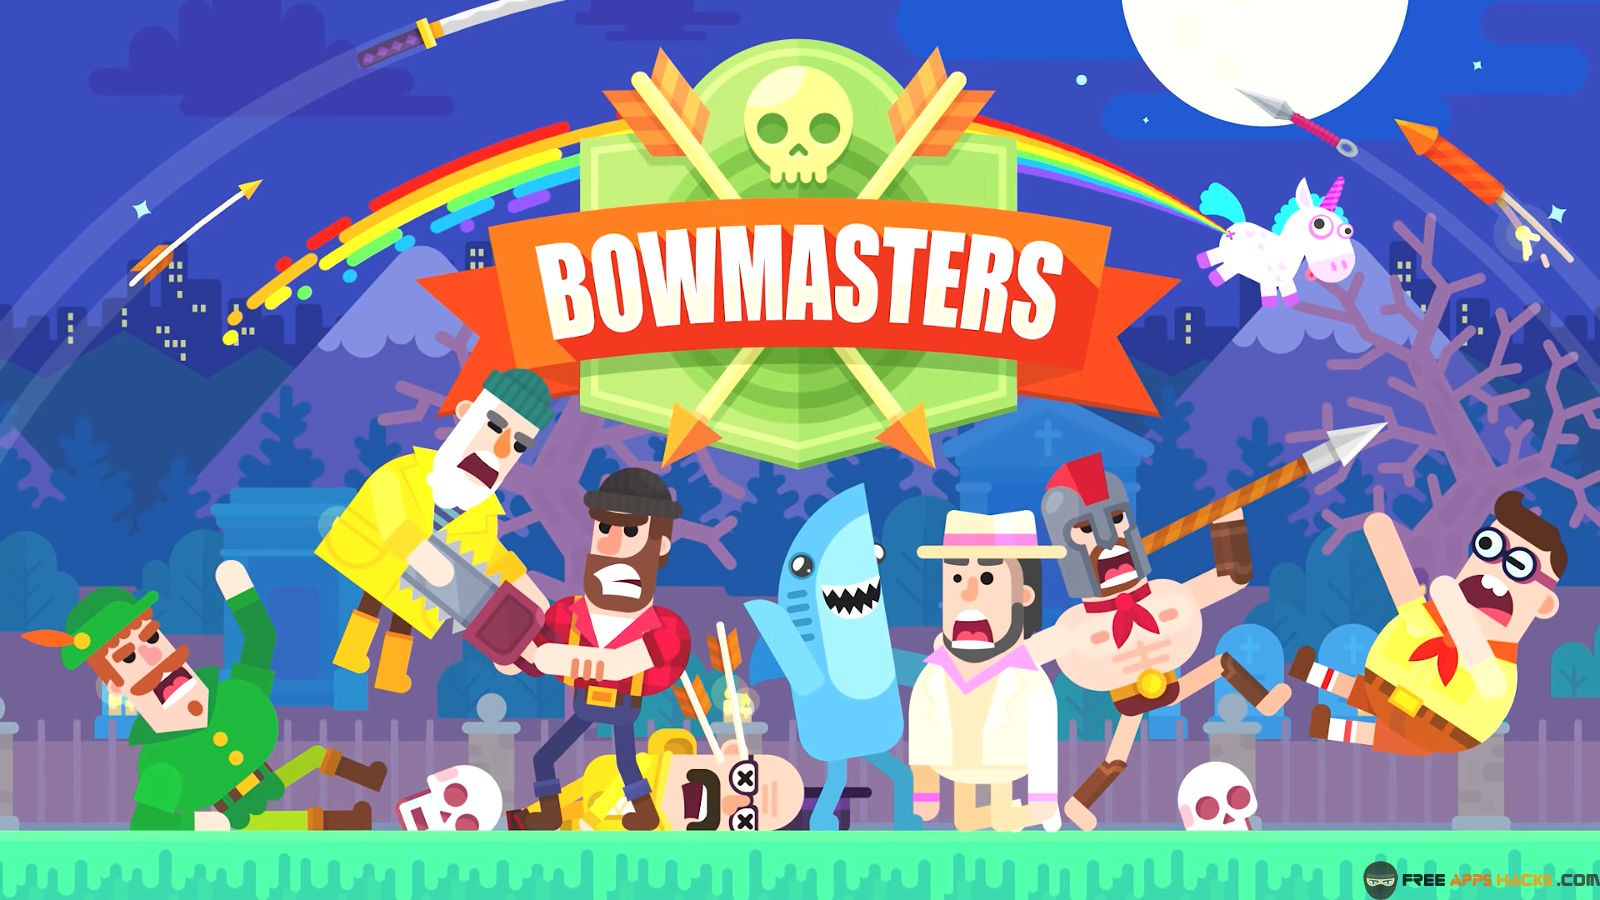 bowmasters app download